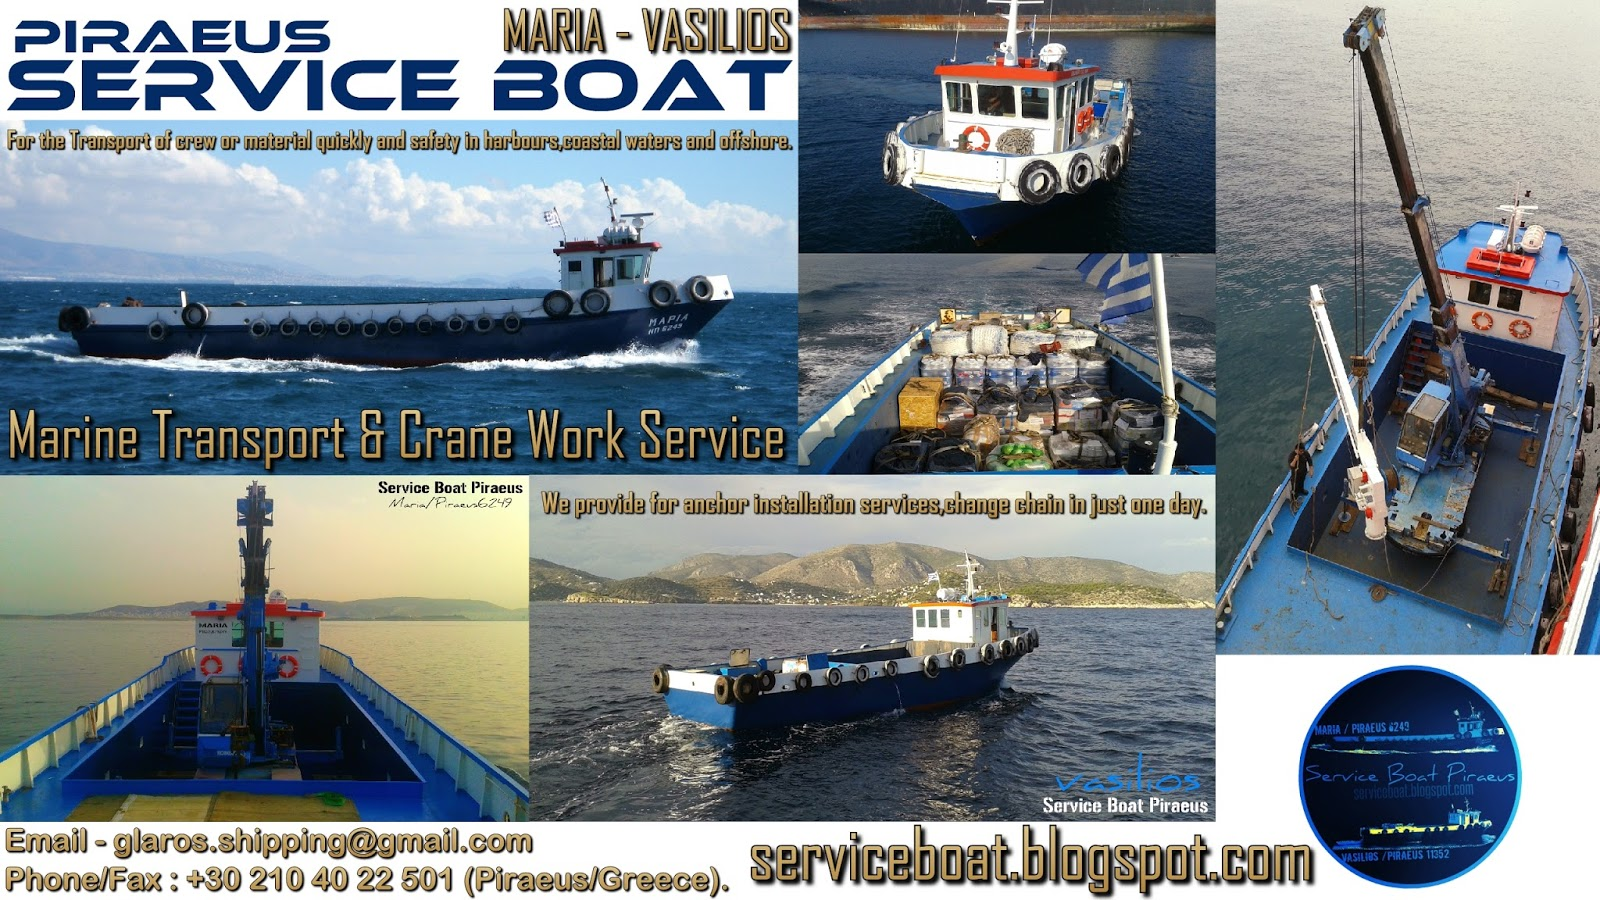 marine transportation thesis Program overview the bachelor of science in marine transportation (bsmt) is a four-year undergraduate degree program which leads to a professional career in the maritime industry, as a marine deck officer.